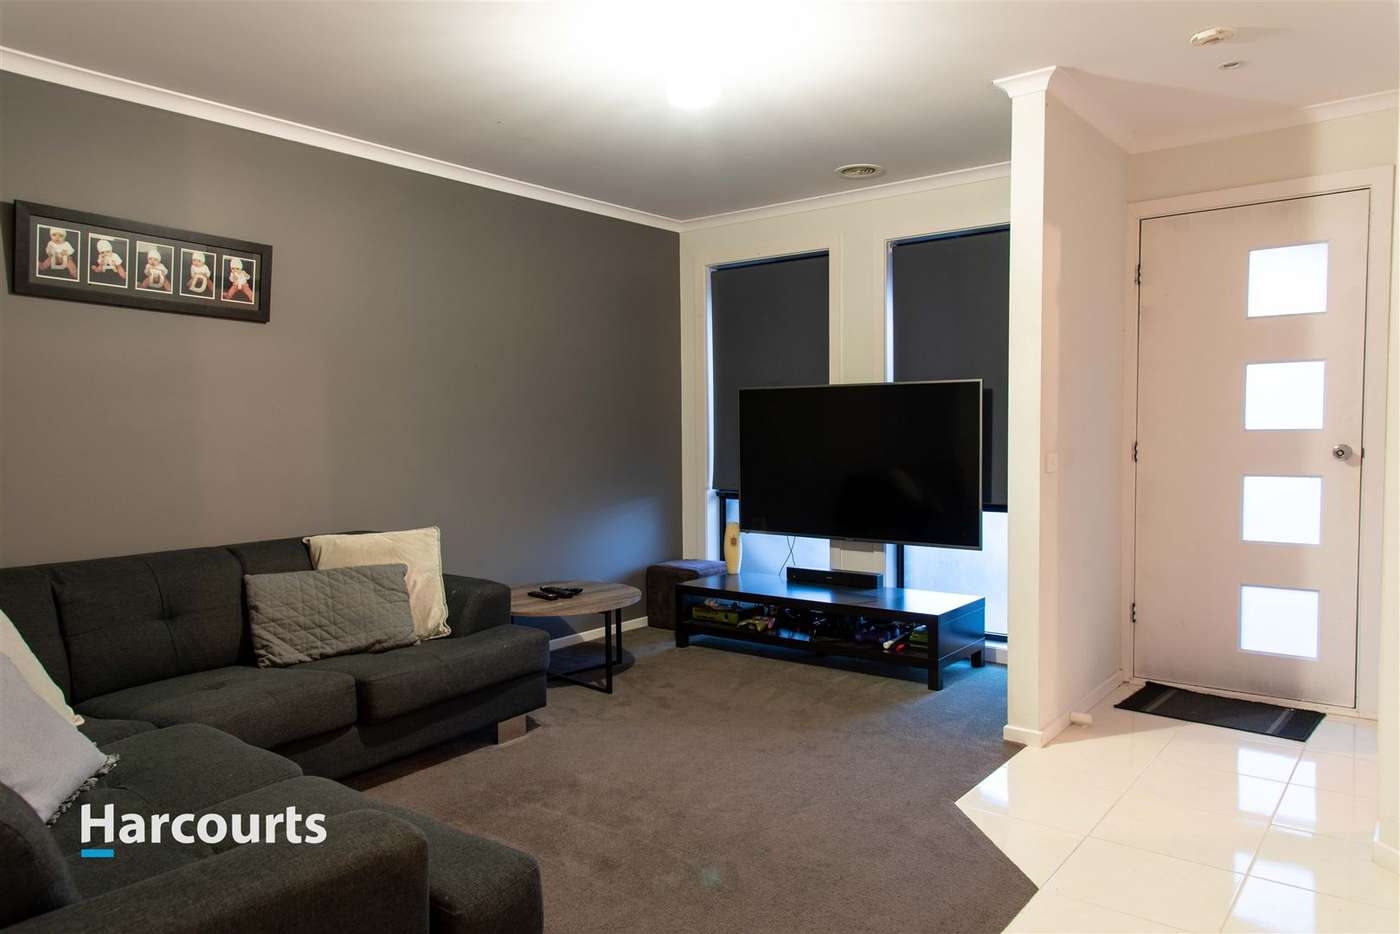 Sixth view of Homely house listing, 12 Babington Close, Hastings VIC 3915